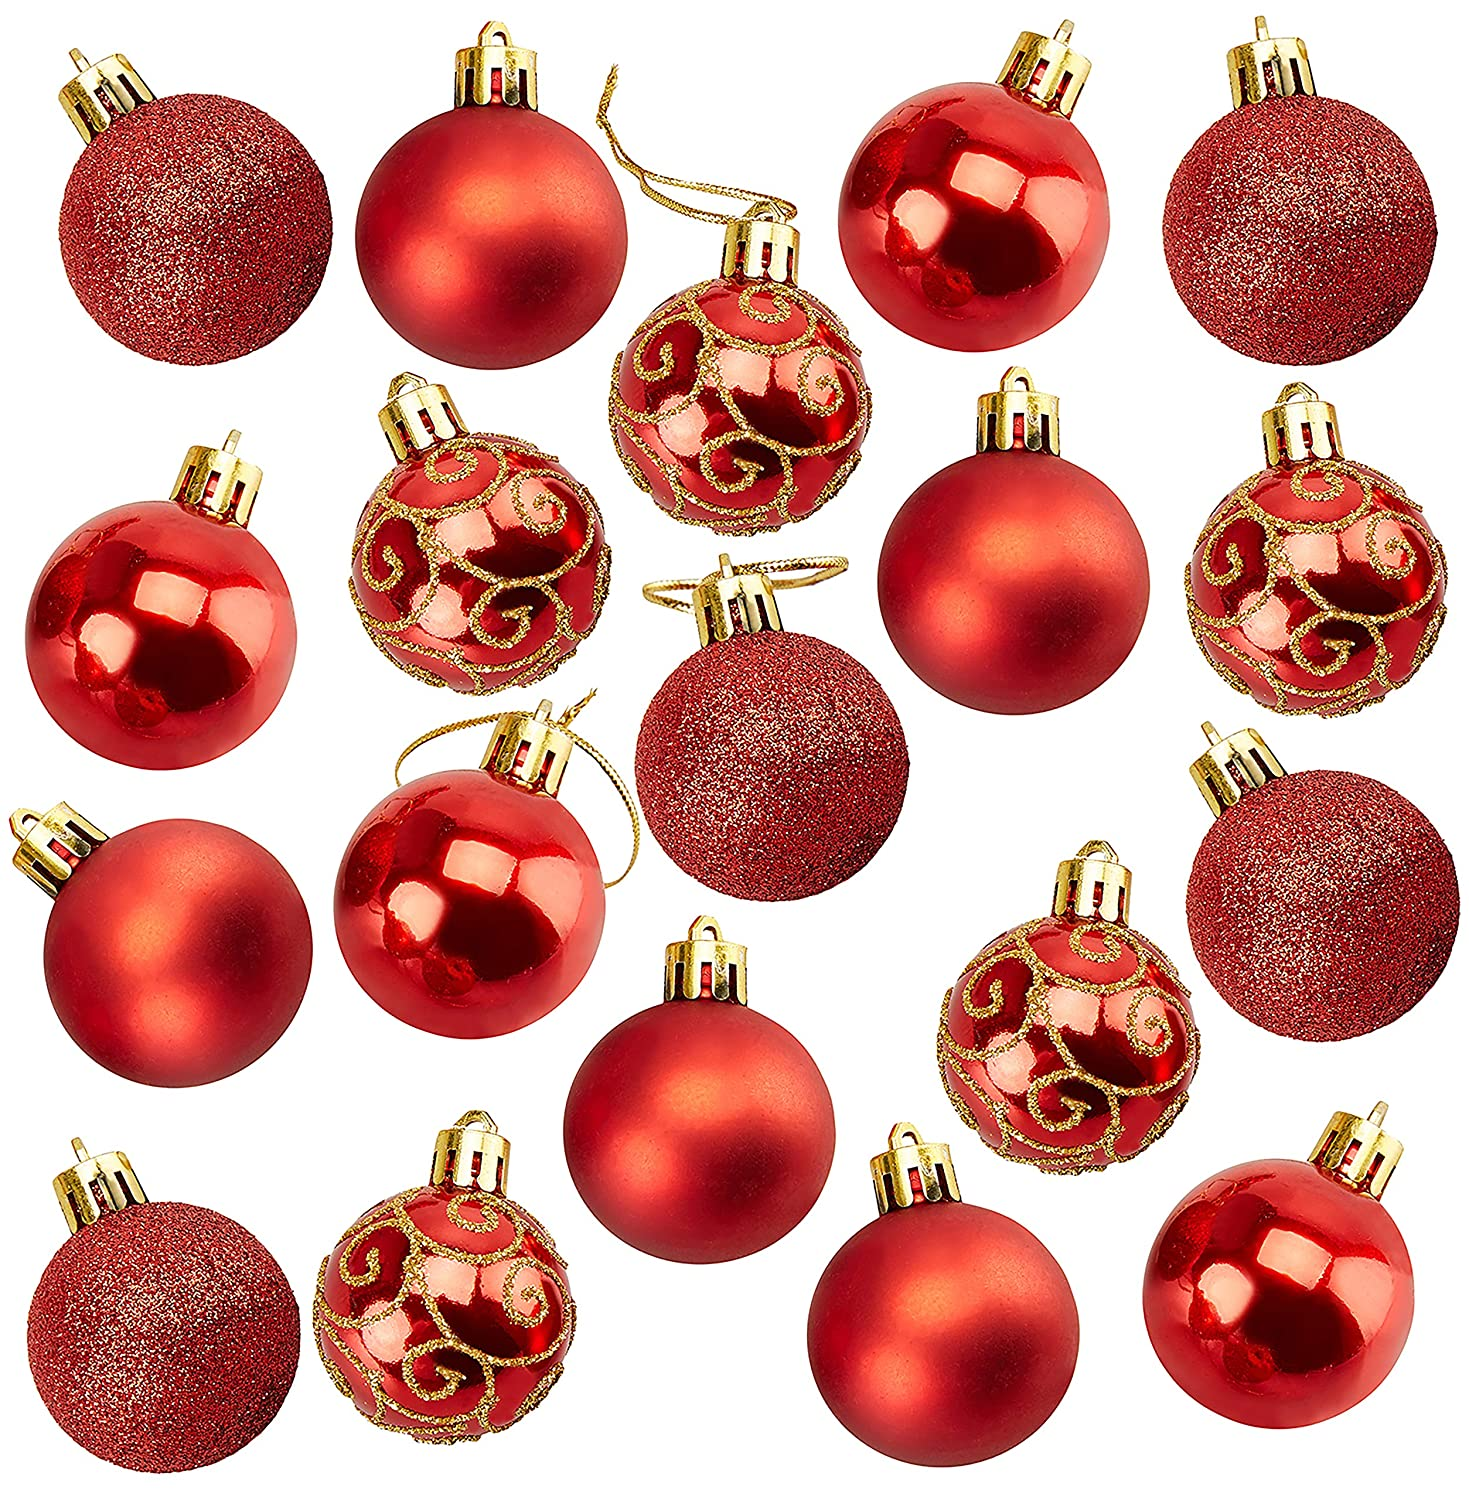 Christmas Balls.Juvale 36 Pack Christmas Tree Ornaments Red Shatterproof Medium Christmas Balls Decoration Assorted 4 Finish Shiny Matte Glitter Glitter Scroll